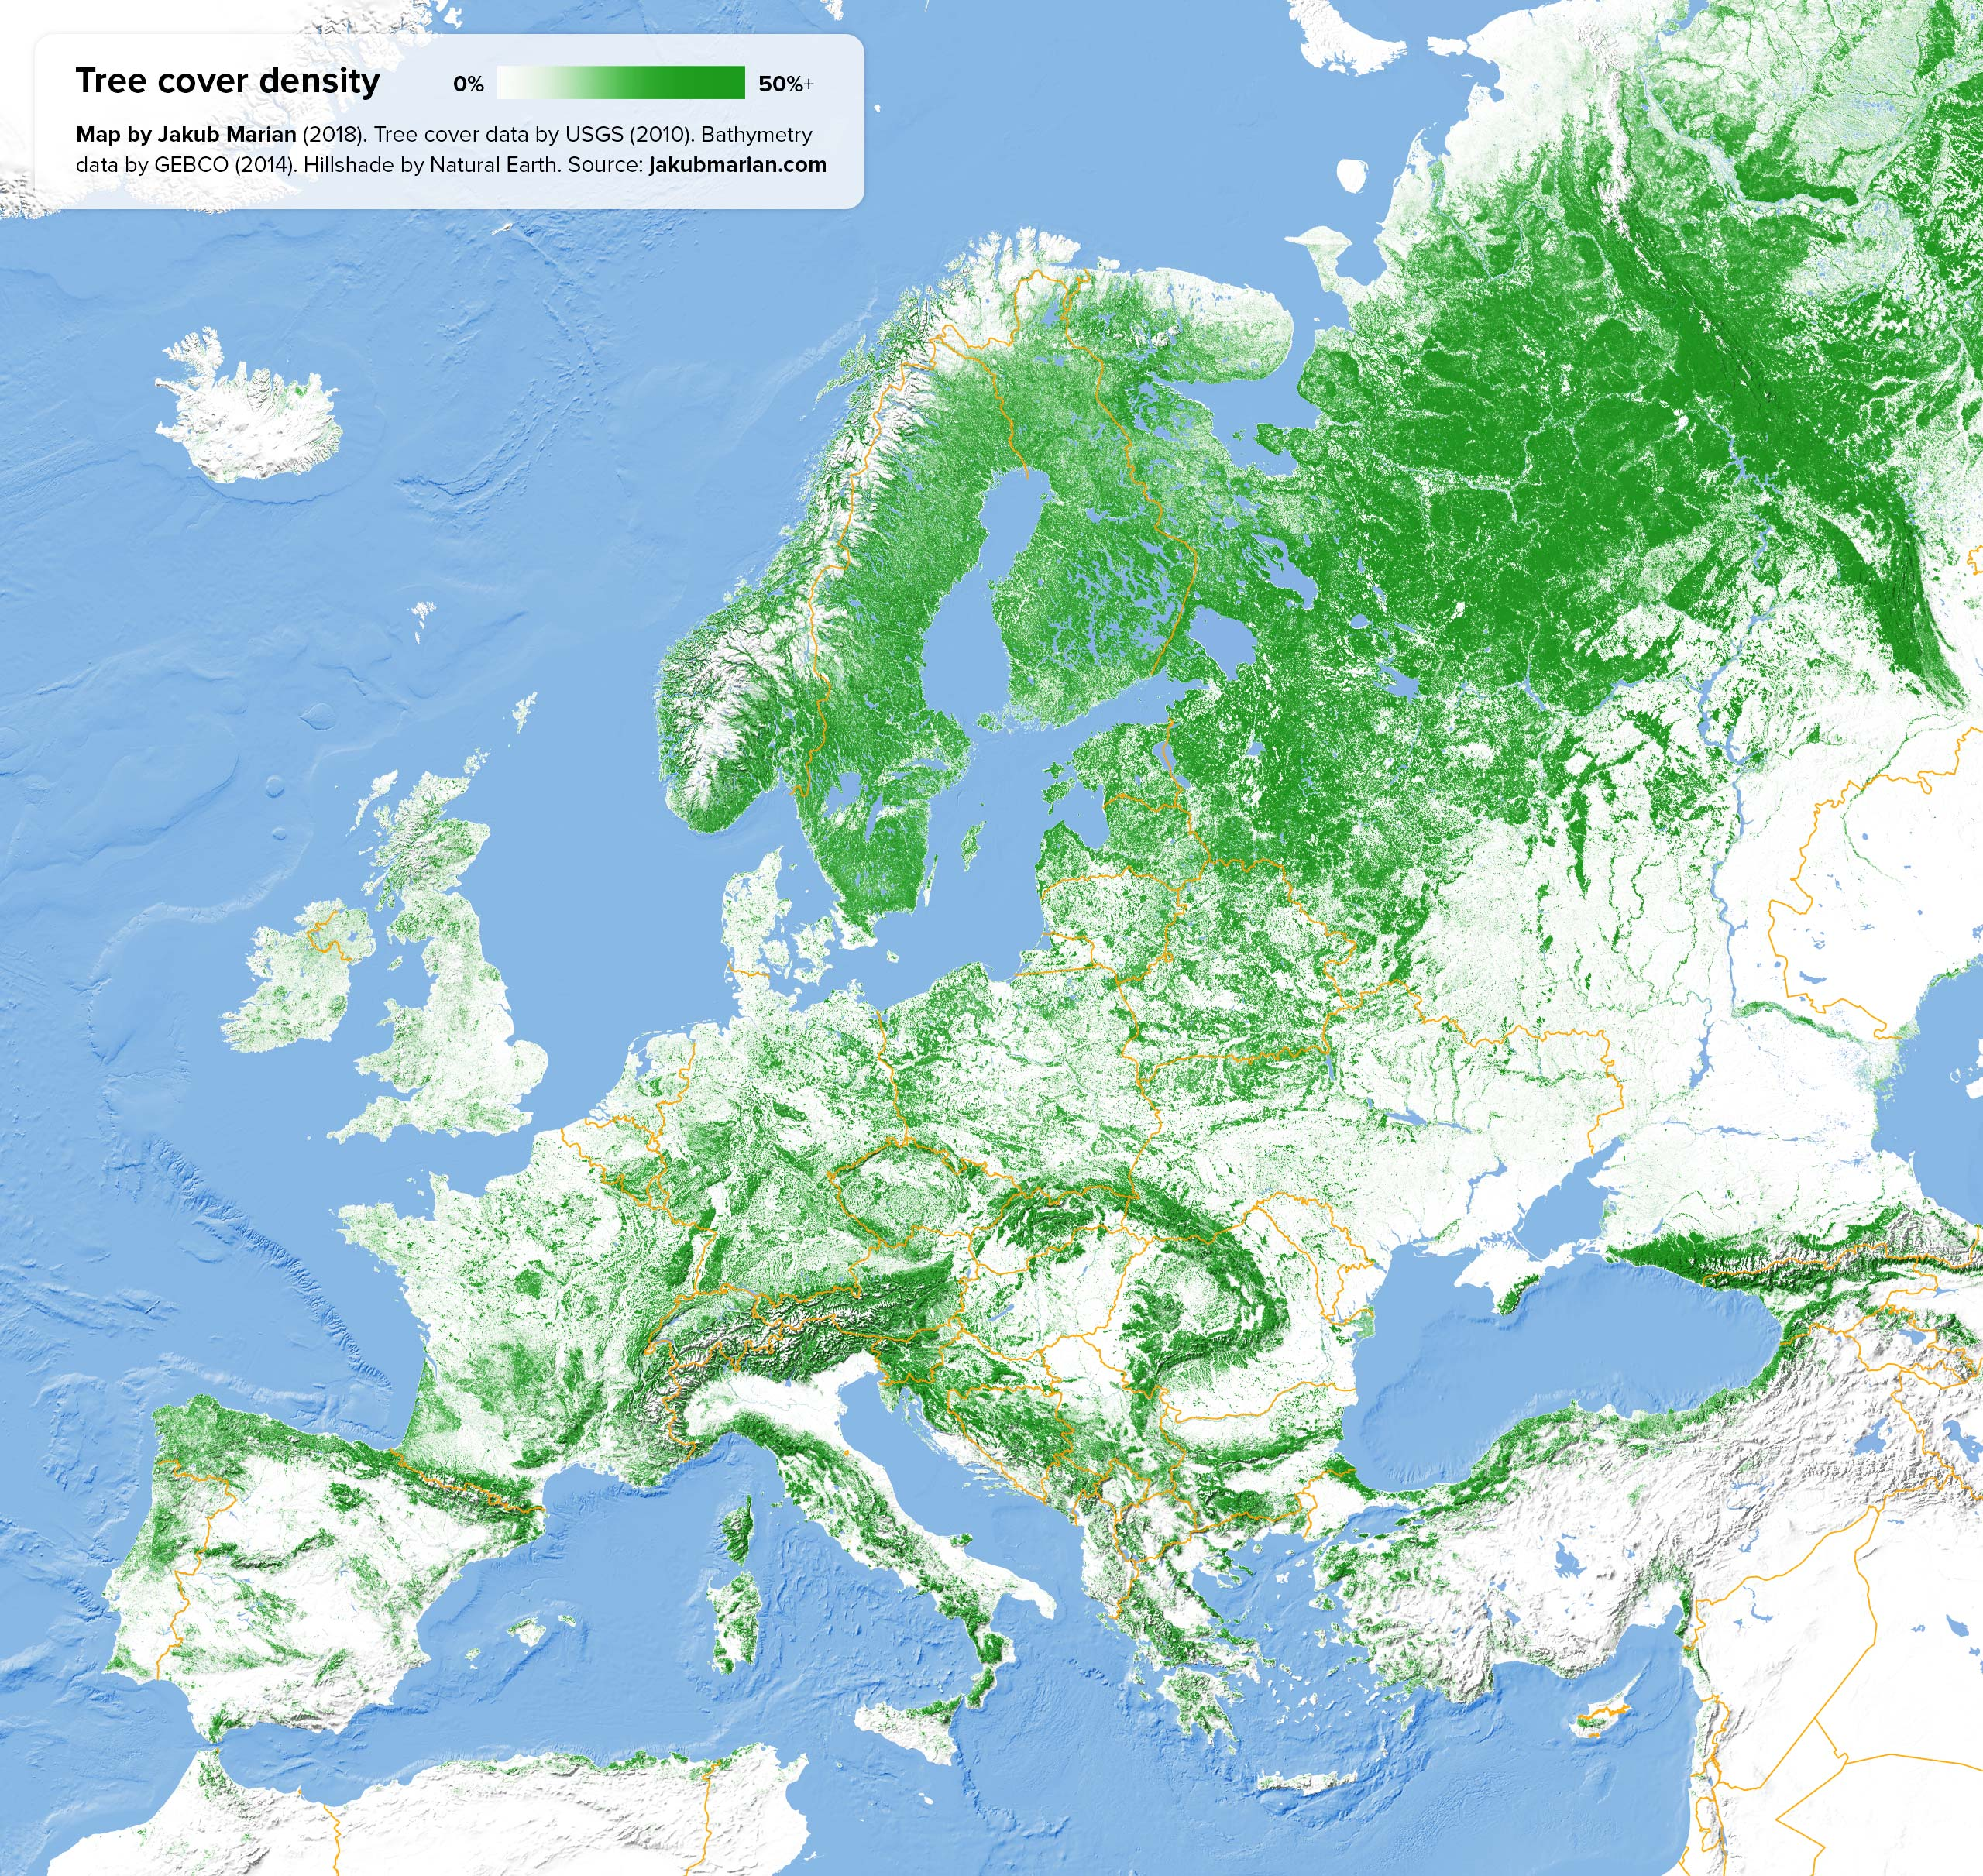 Tree cover of Europe